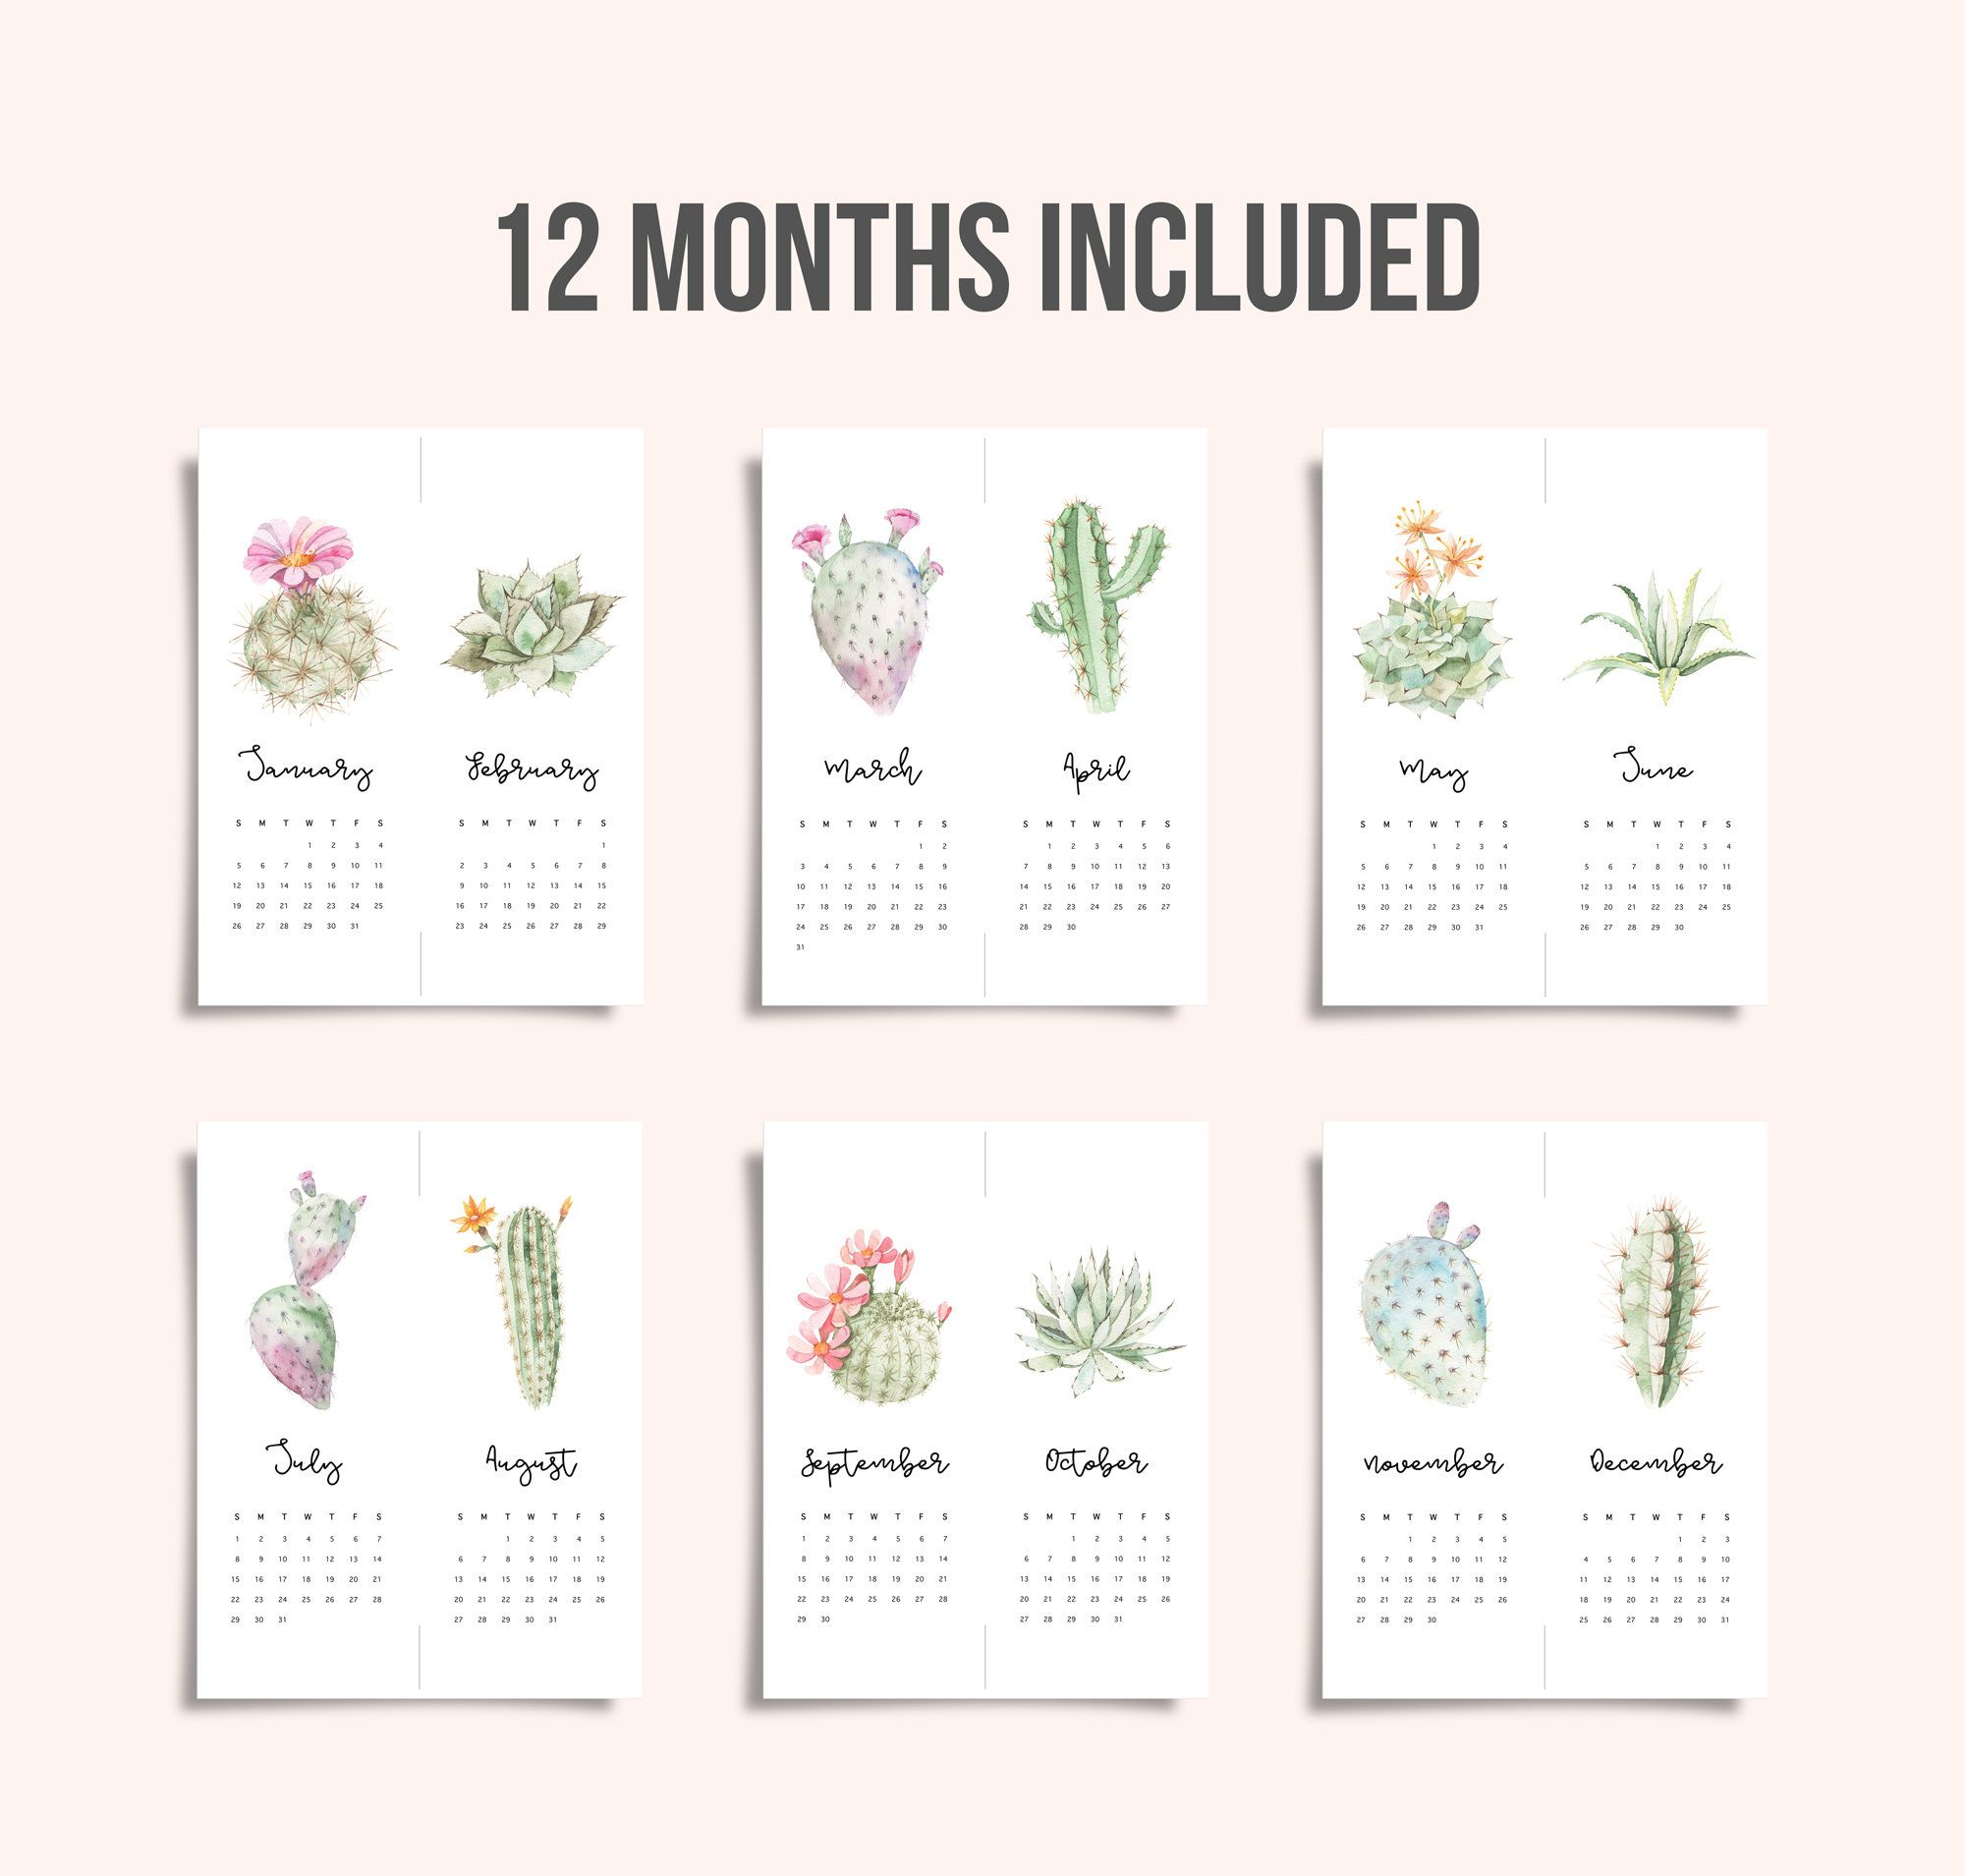 2020 Wall Calendar Printable Small Cute Calendar 2020 Watercolor